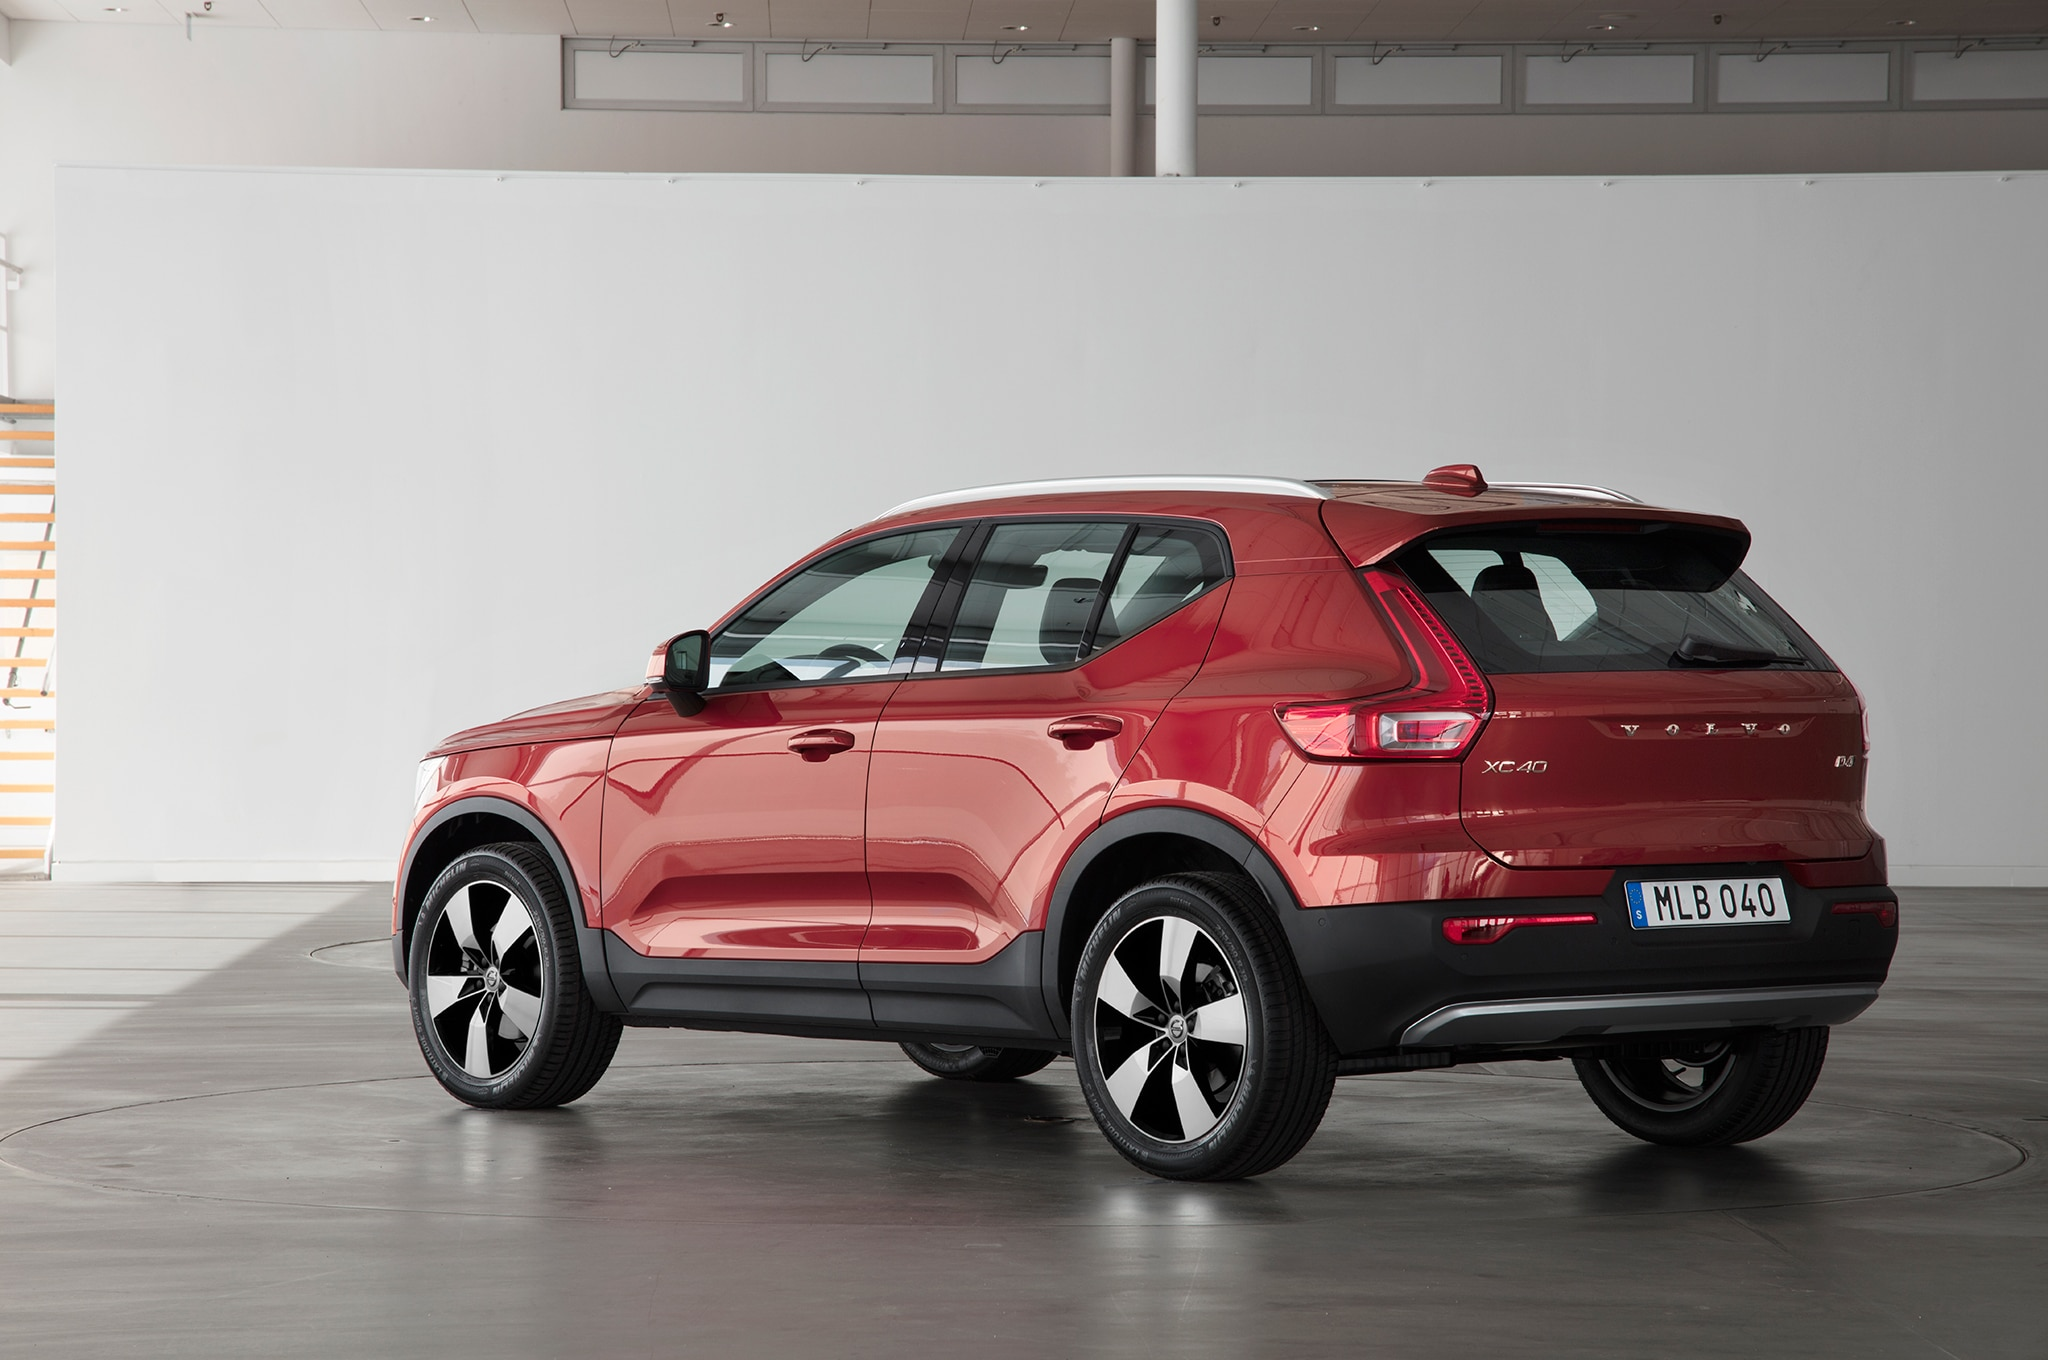 2019 volvo xc40 crashes milan s fashion week automobile. Black Bedroom Furniture Sets. Home Design Ideas